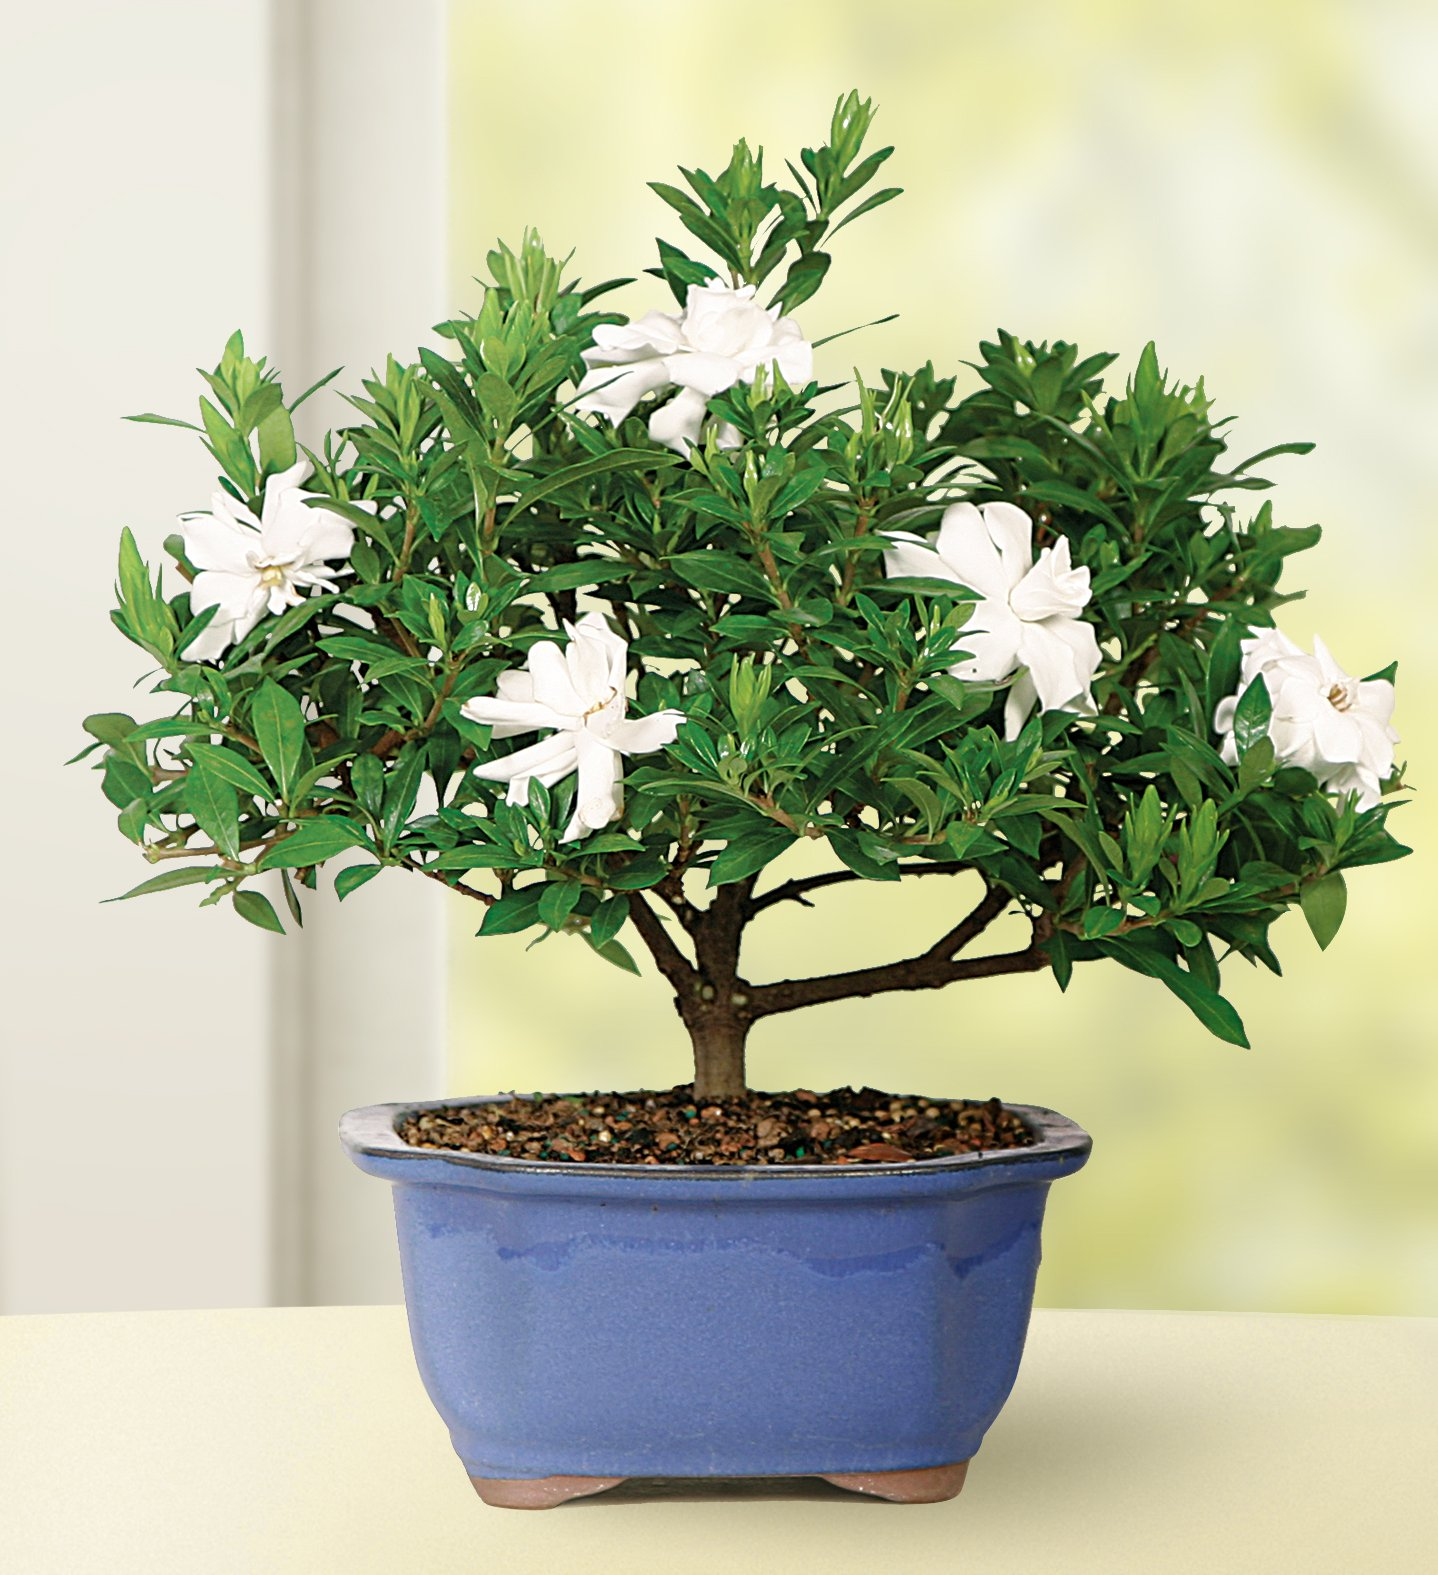 Brussel's Live Gardenia Outdoor Bonsai Tree - 4 Years Old; 6'' to 8'' Tall with Decorative Container